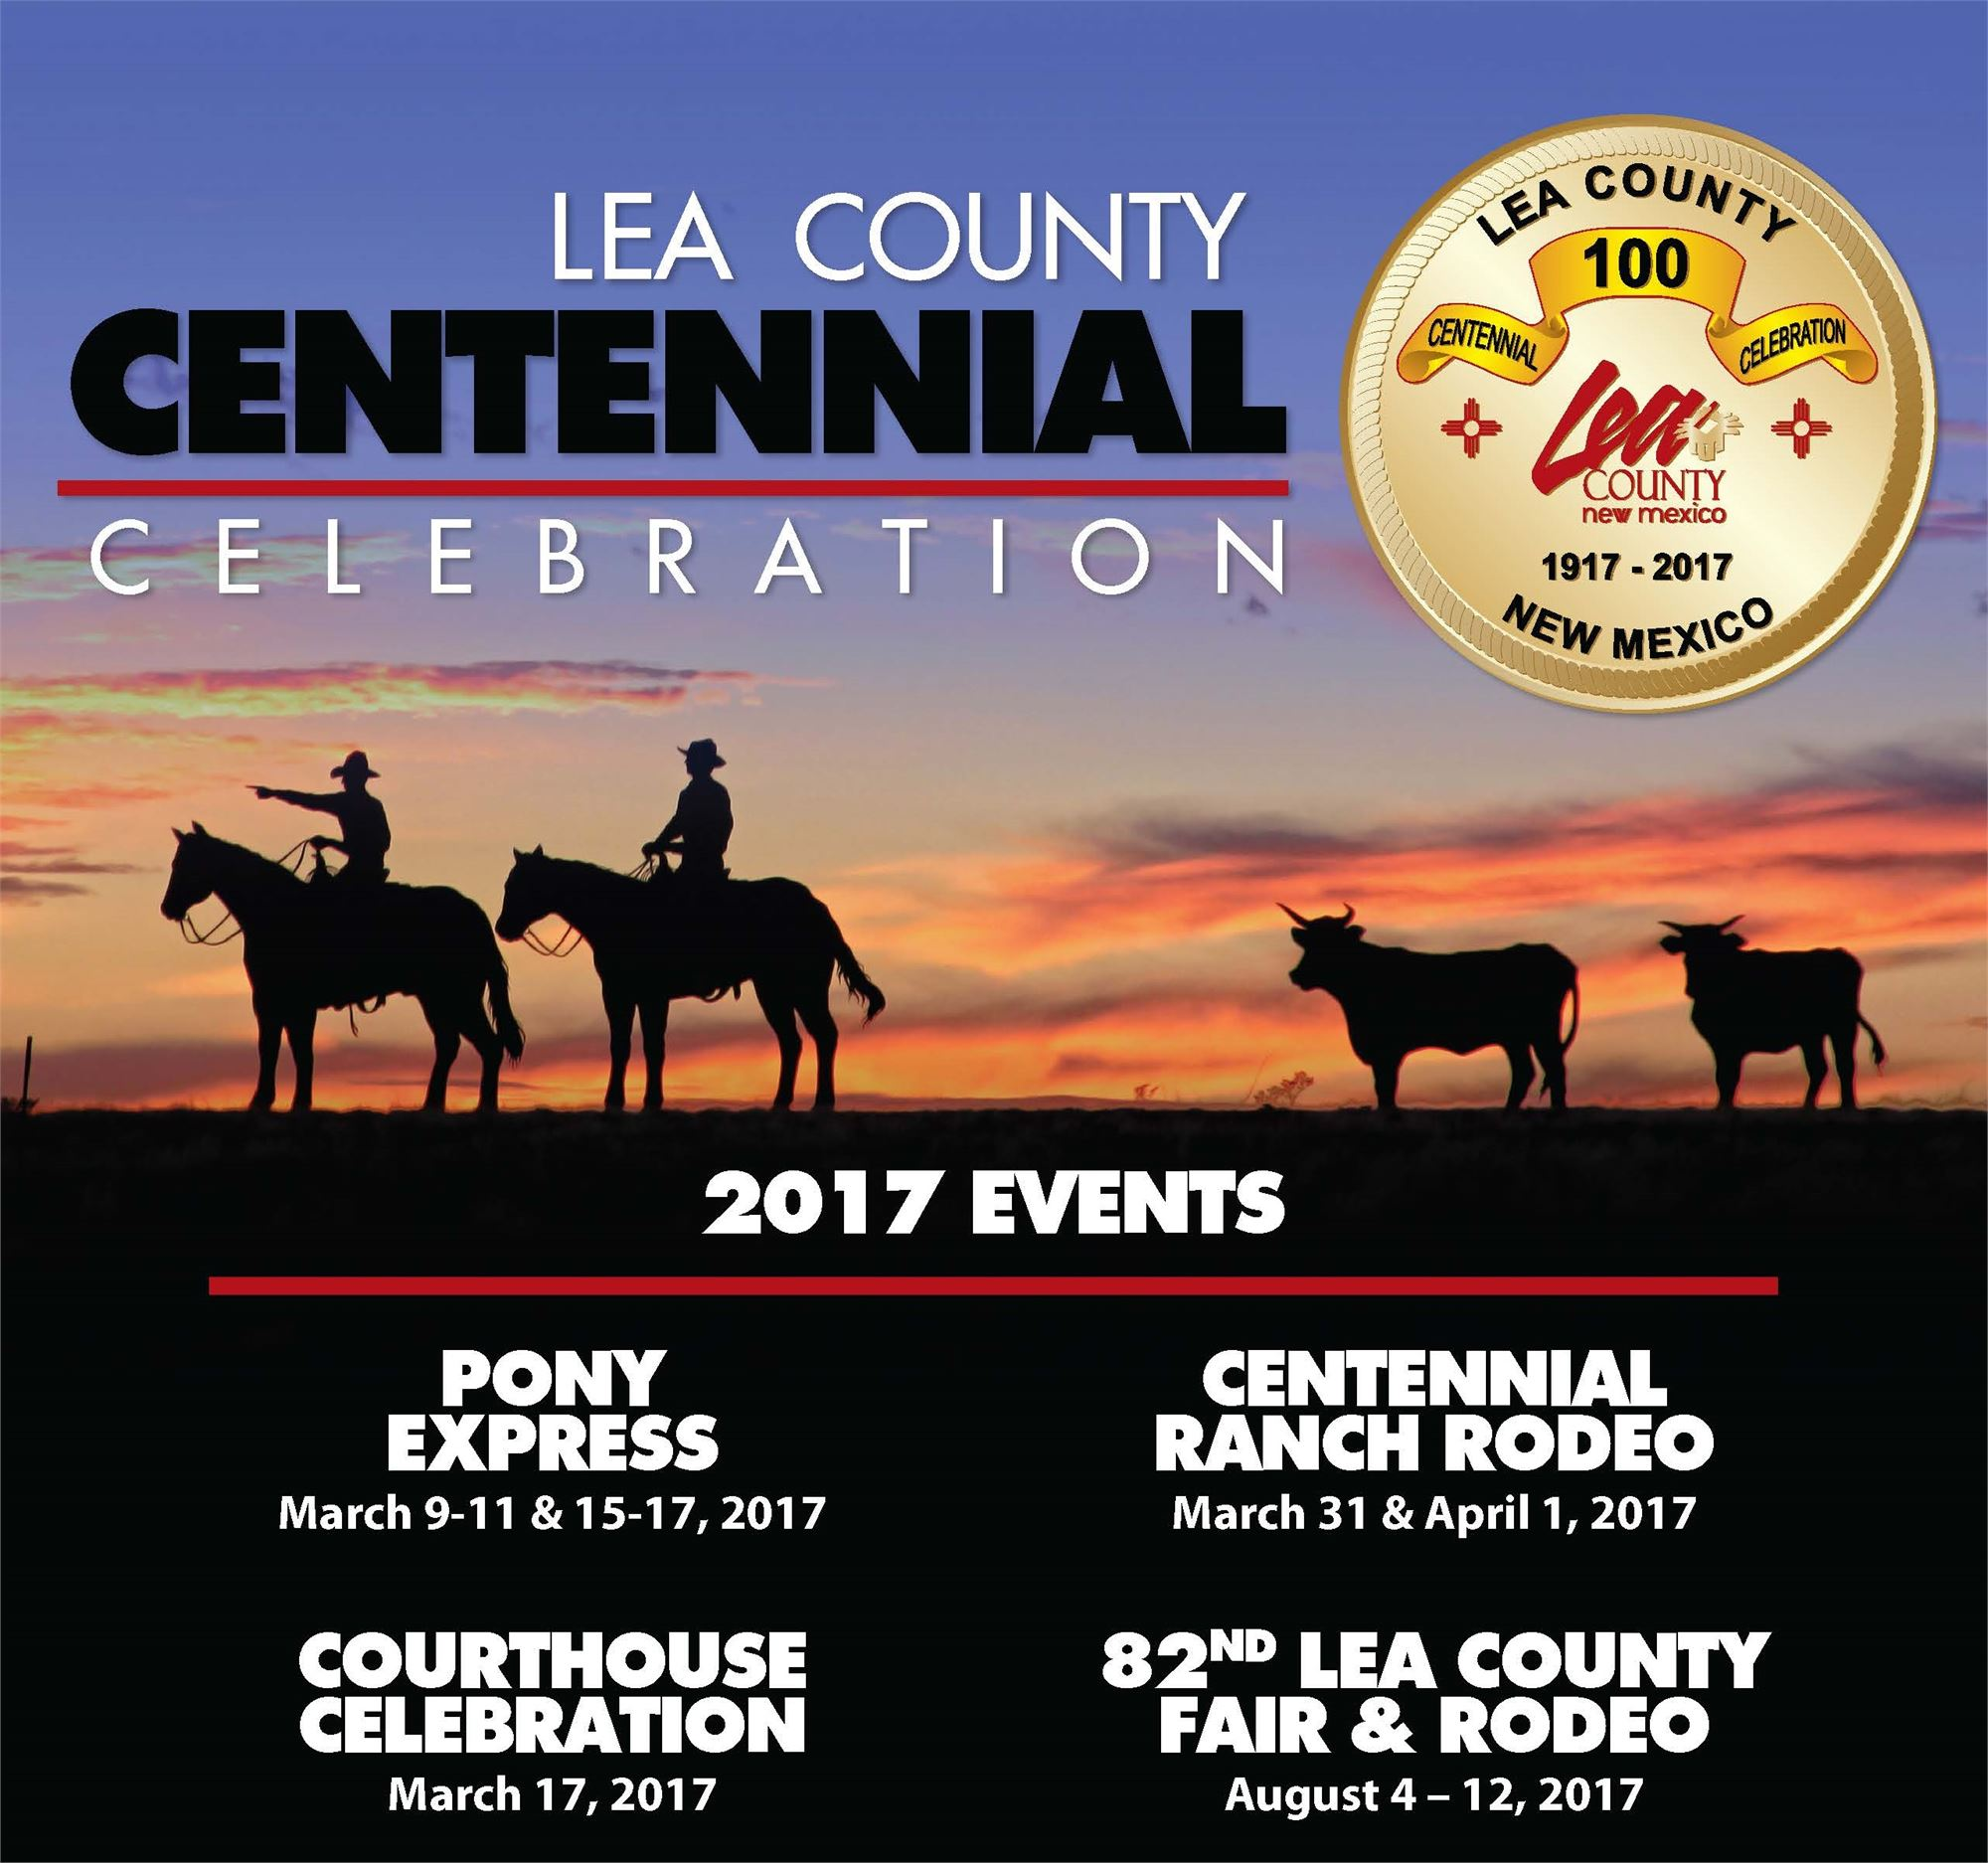 New mexico lea county eunice - Detailed List Of Events Here